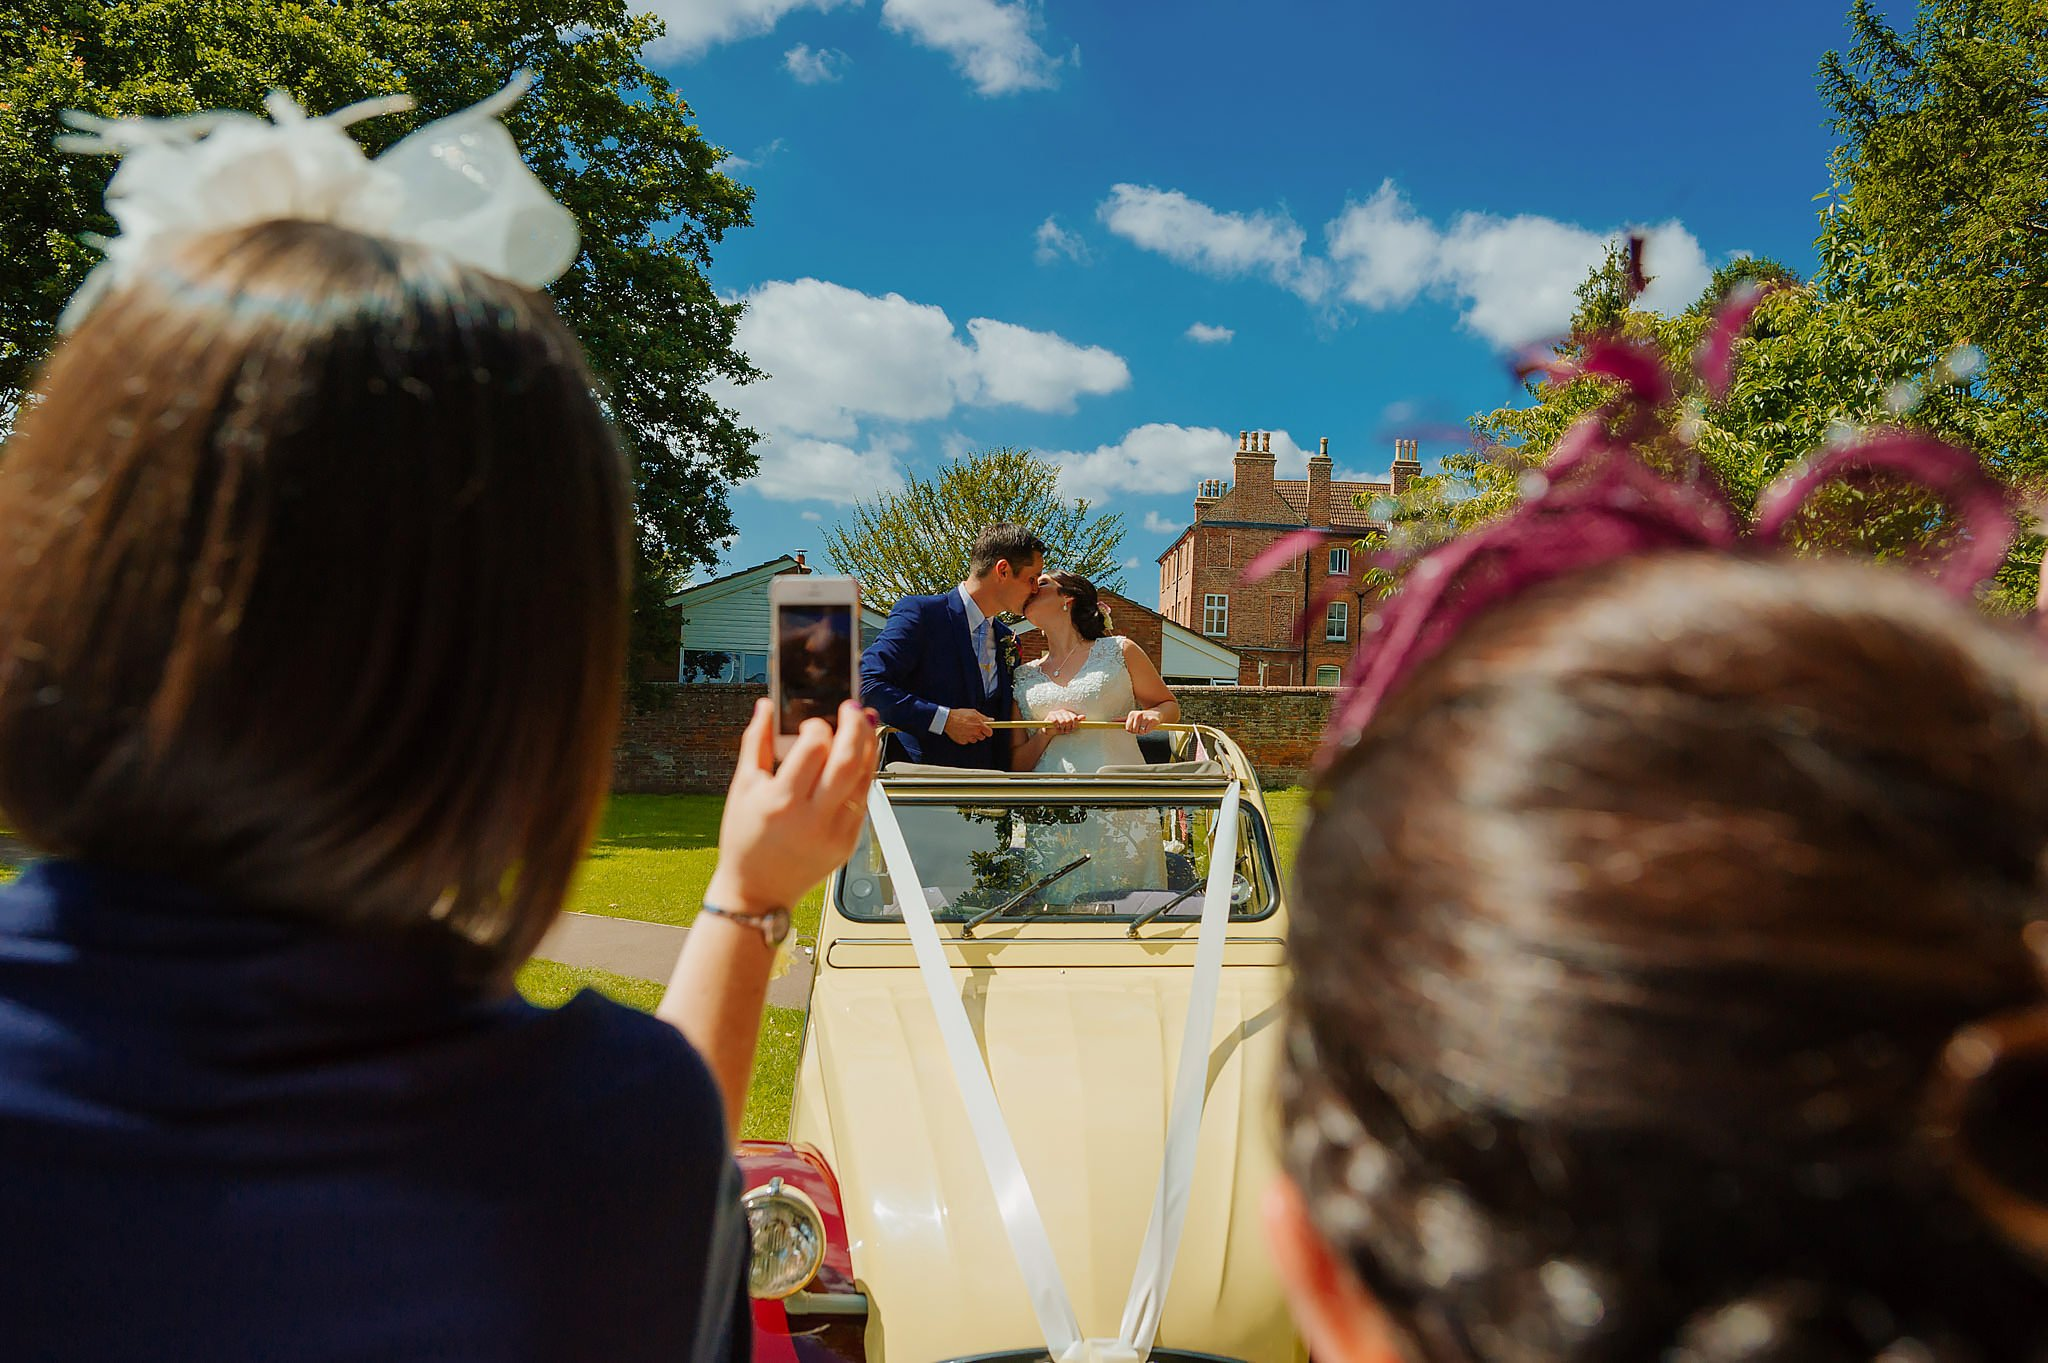 Wedding photography at Hellens Manor in Herefordshire, West Midlands | Shelley + Ian 37